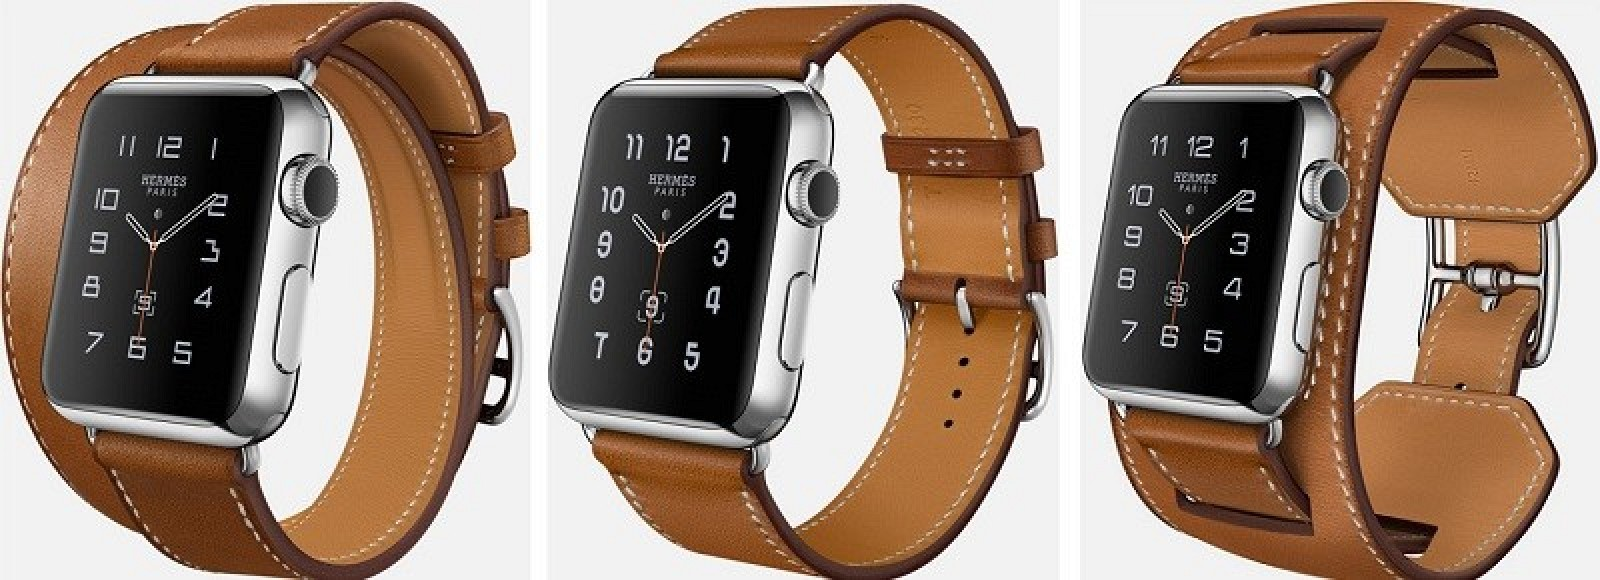 Black Friday Car Deals >> Apple to Partner With Hermes For New Apple Watch Bands and Watch Faces - Mac Rumors